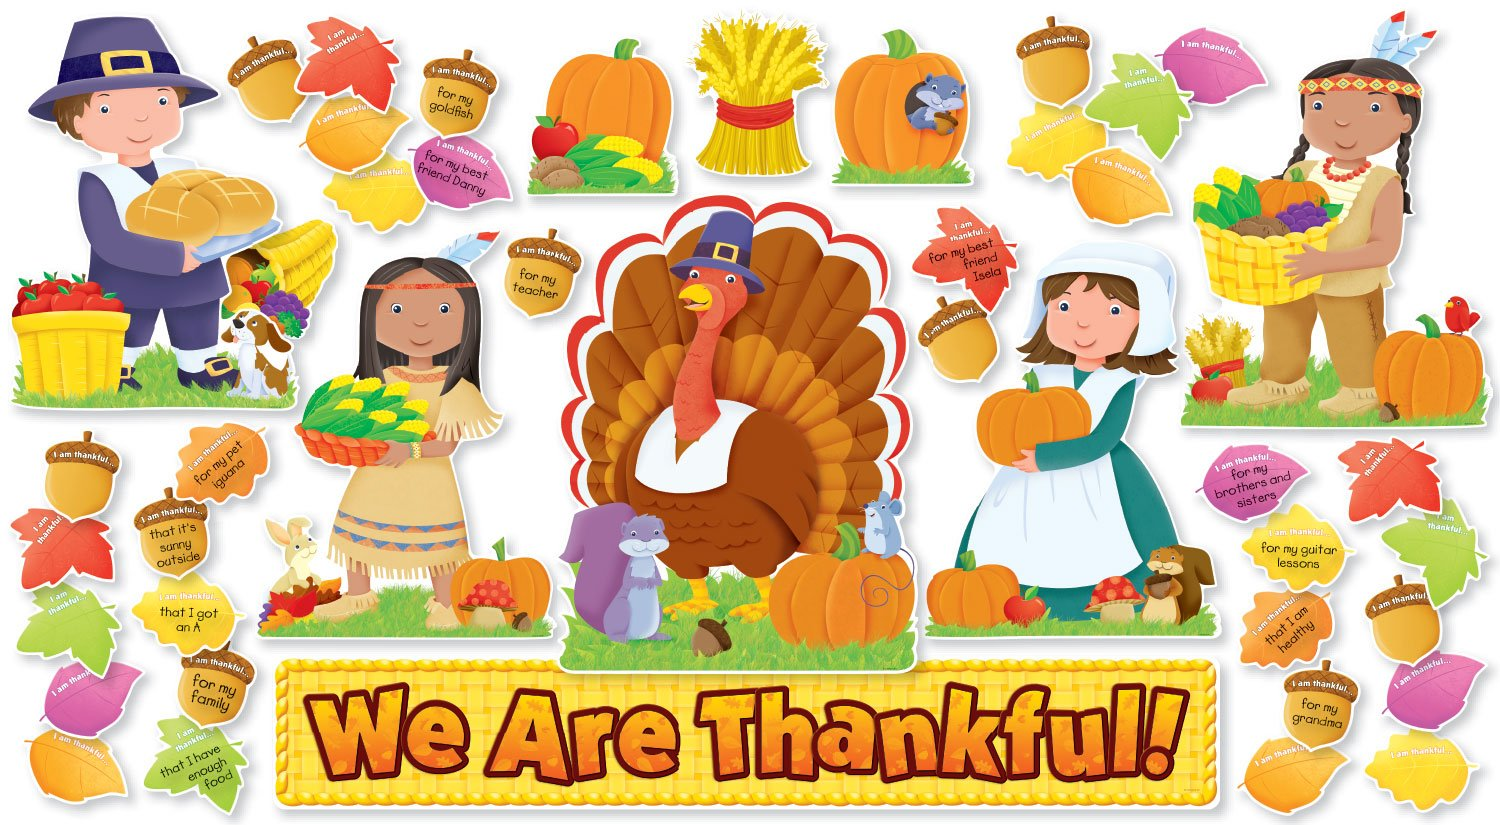 We Are Thankful! Bulletin Board (SC546914) Scholastic General Education Education / General